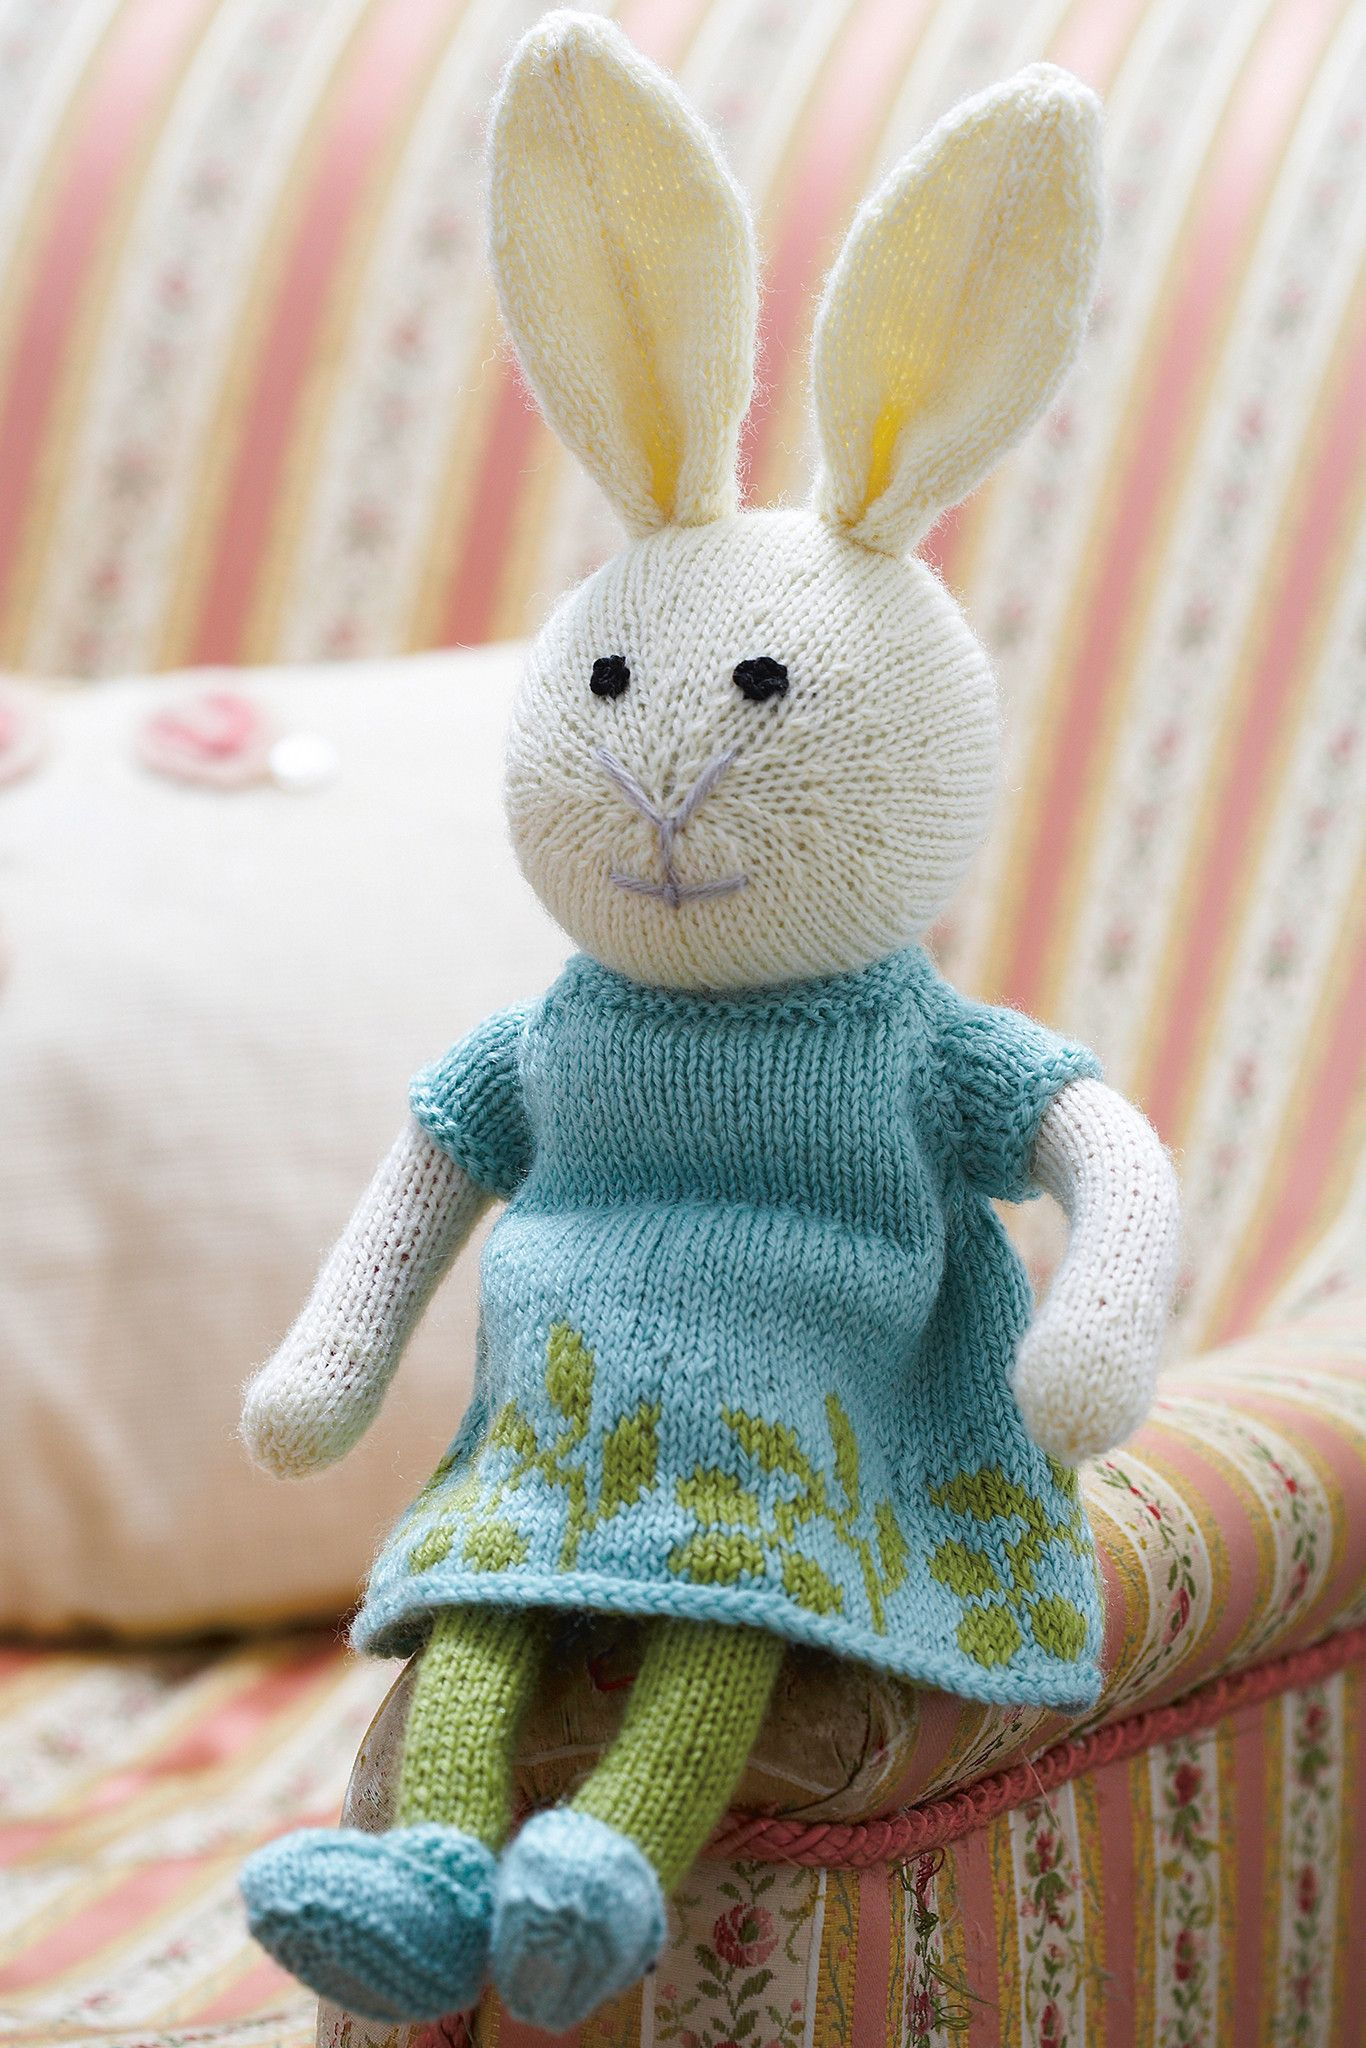 Bunny rabbit girl toy knitting pattern the knitting network knitted girl rabbit toy in cute patterned dress tights and shoes shop this knitting pattern now at the knitting network bankloansurffo Choice Image